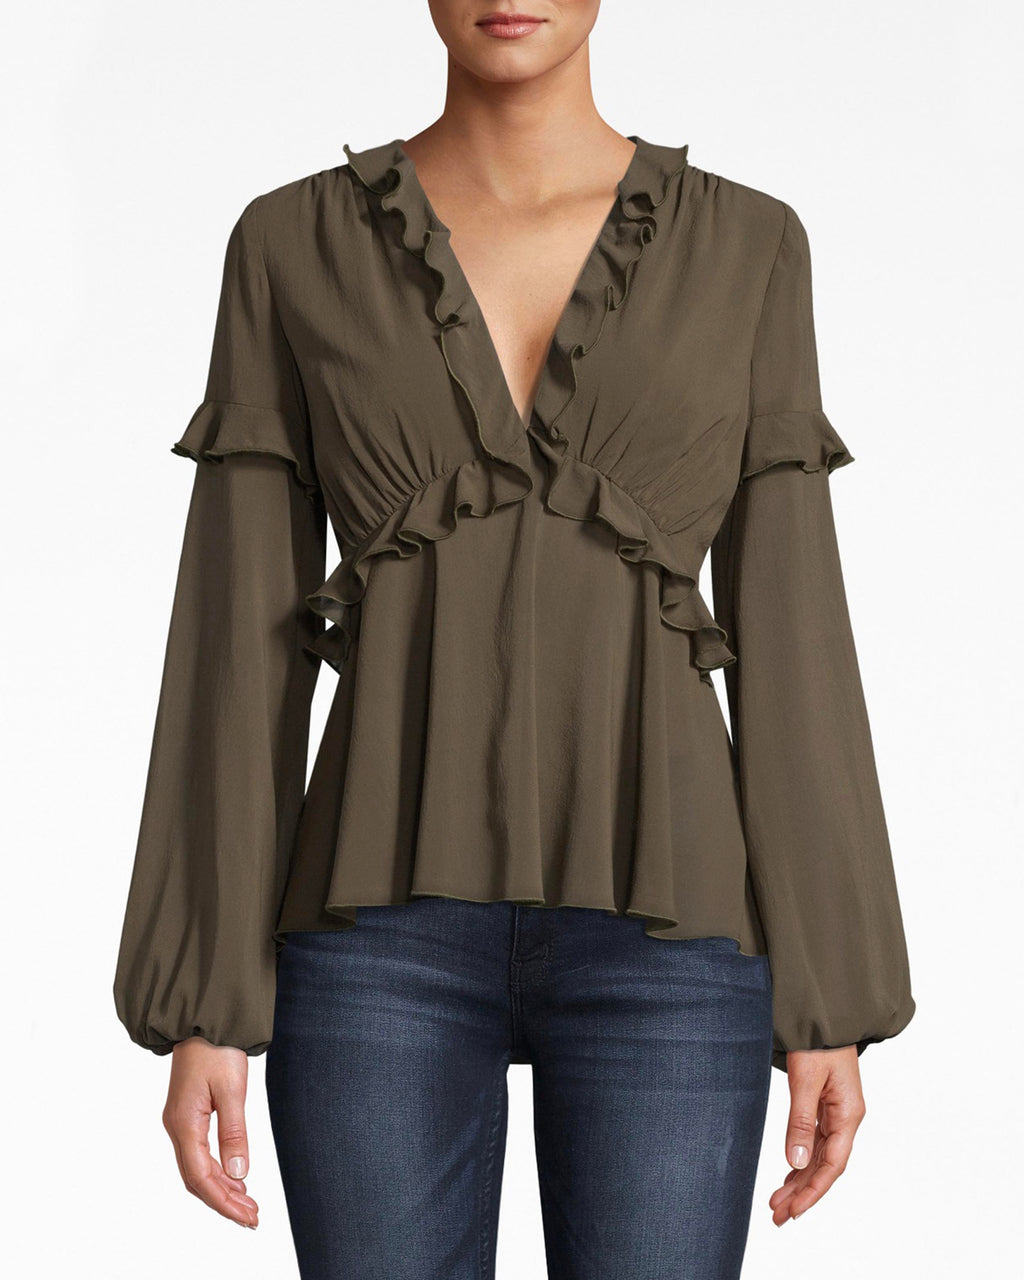 BH10483 - SILK PLUNGE RUFFLE BLOUSE - tops - blouses - In a ruffle mood? The deep v neck on this loose blouse gathers into criss-crossed ruffled edges. Silk pleats flow towards the hem.